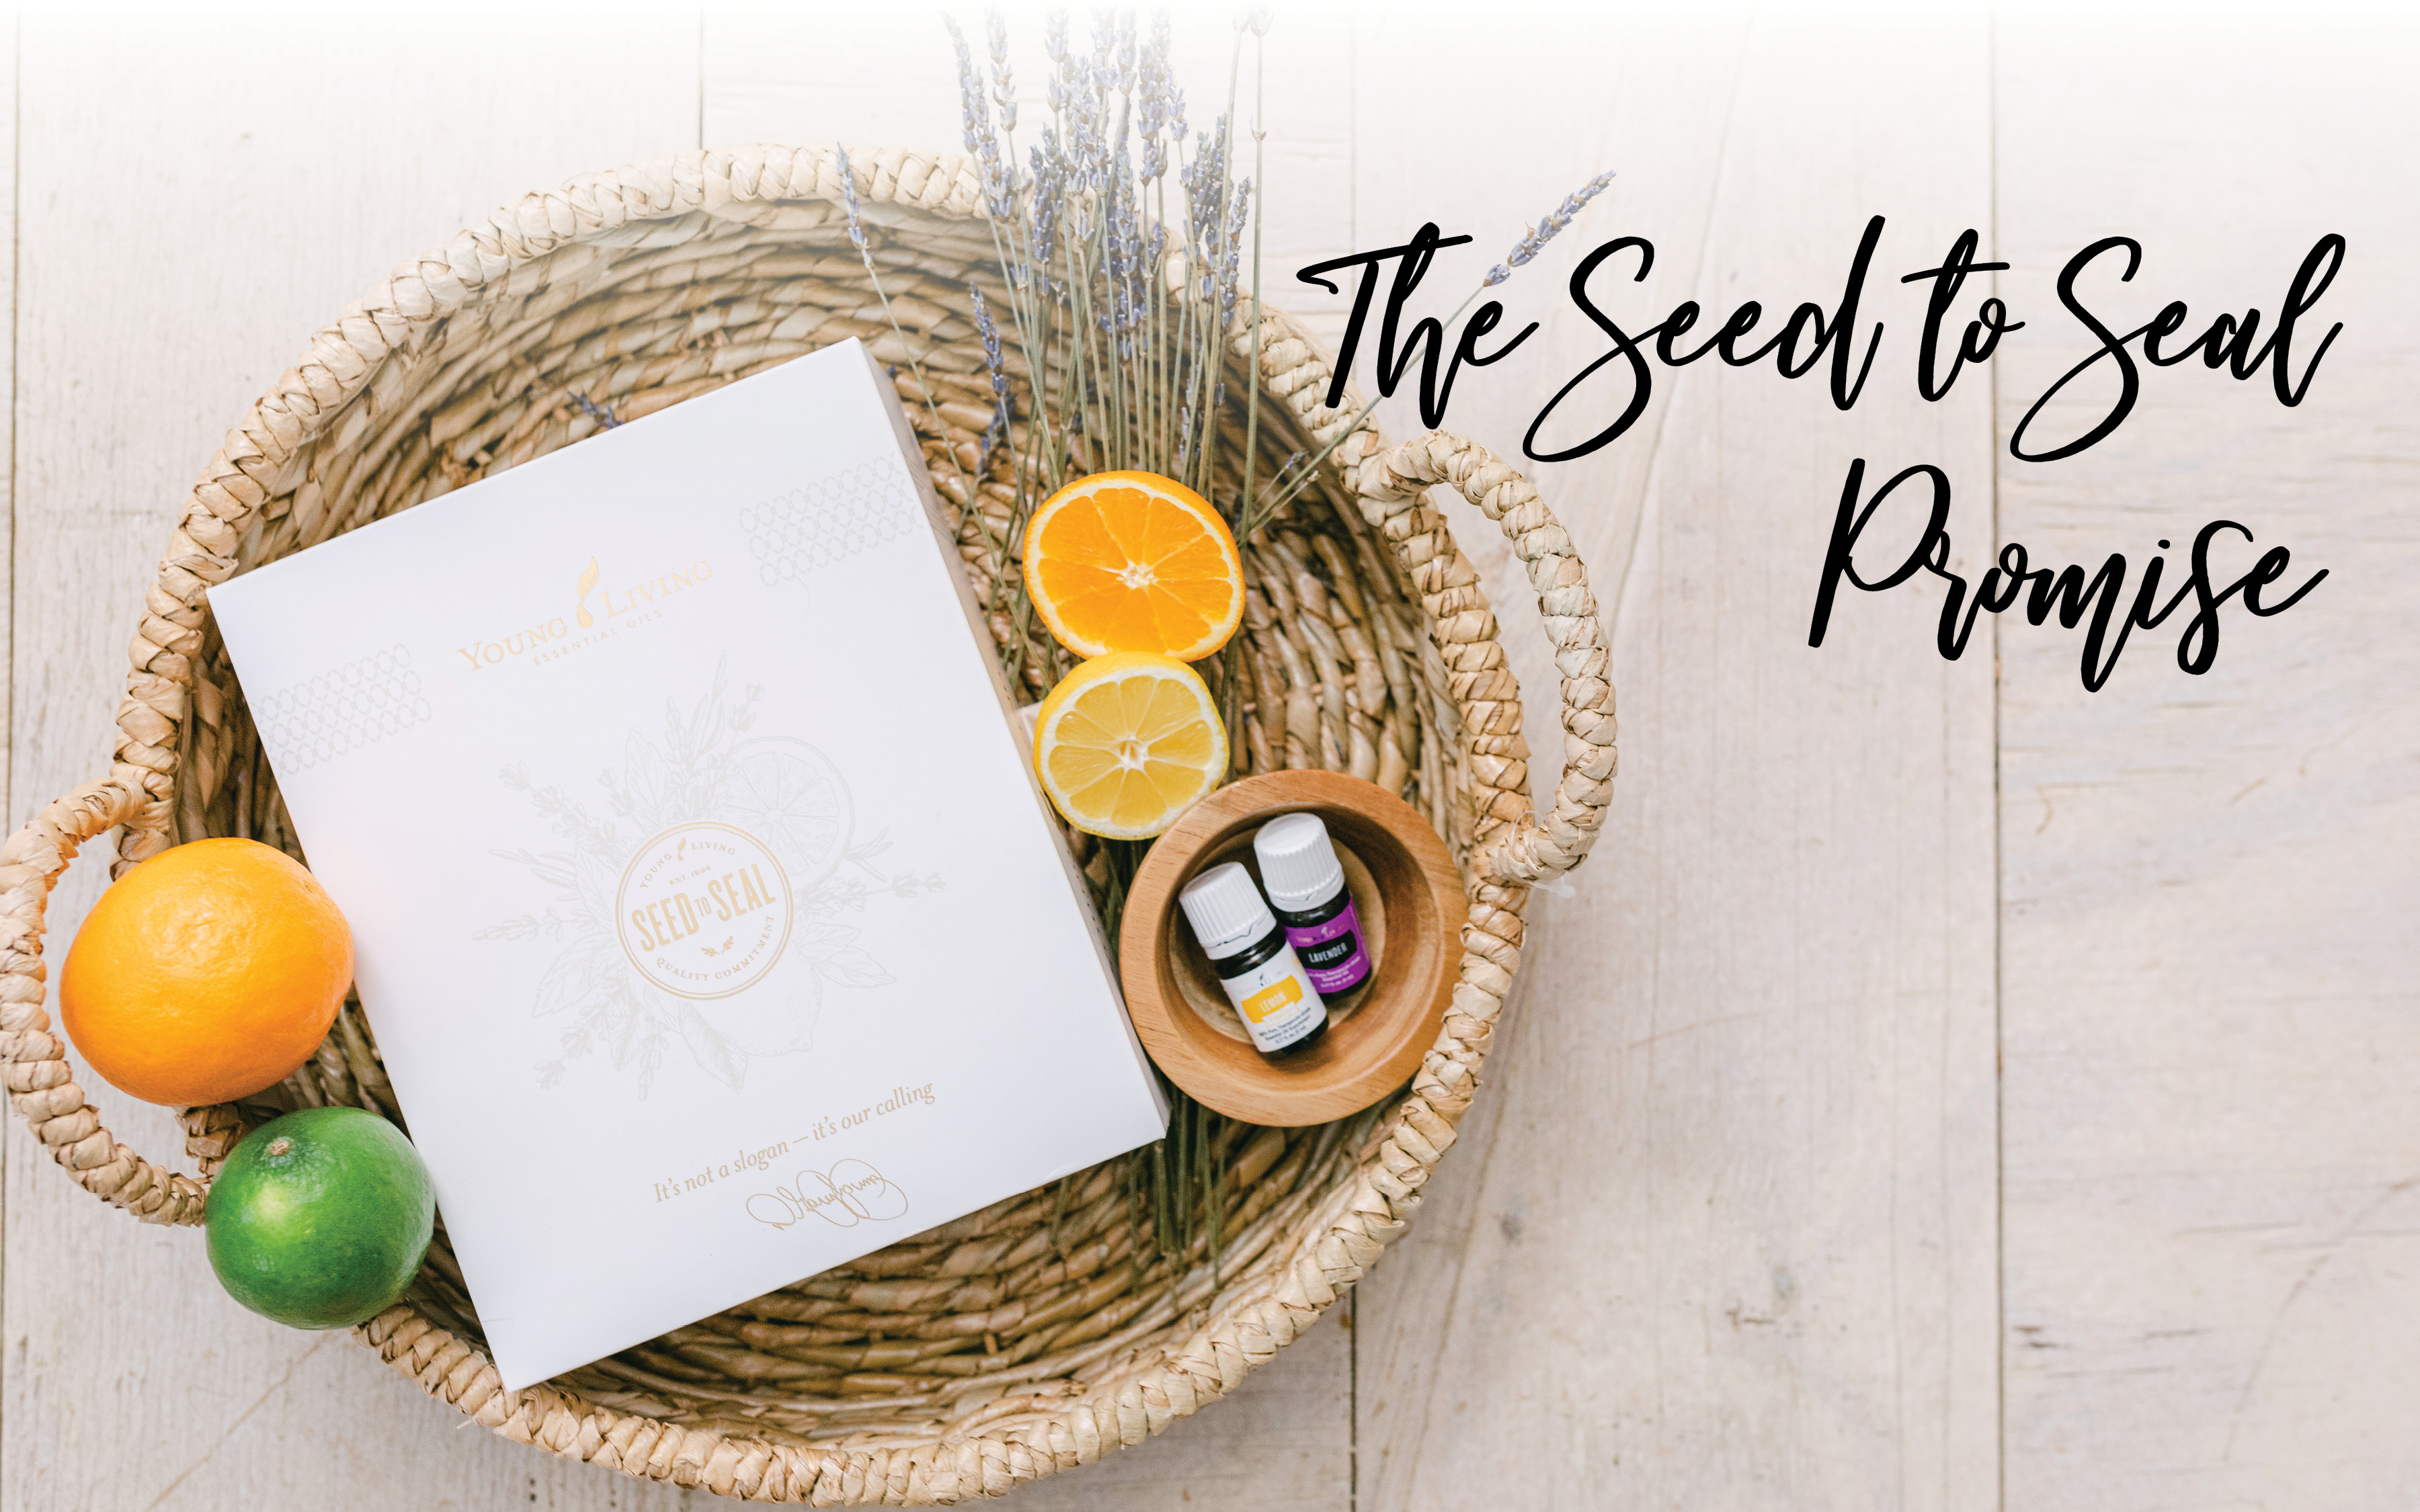 Seed to seal. essential oils 101